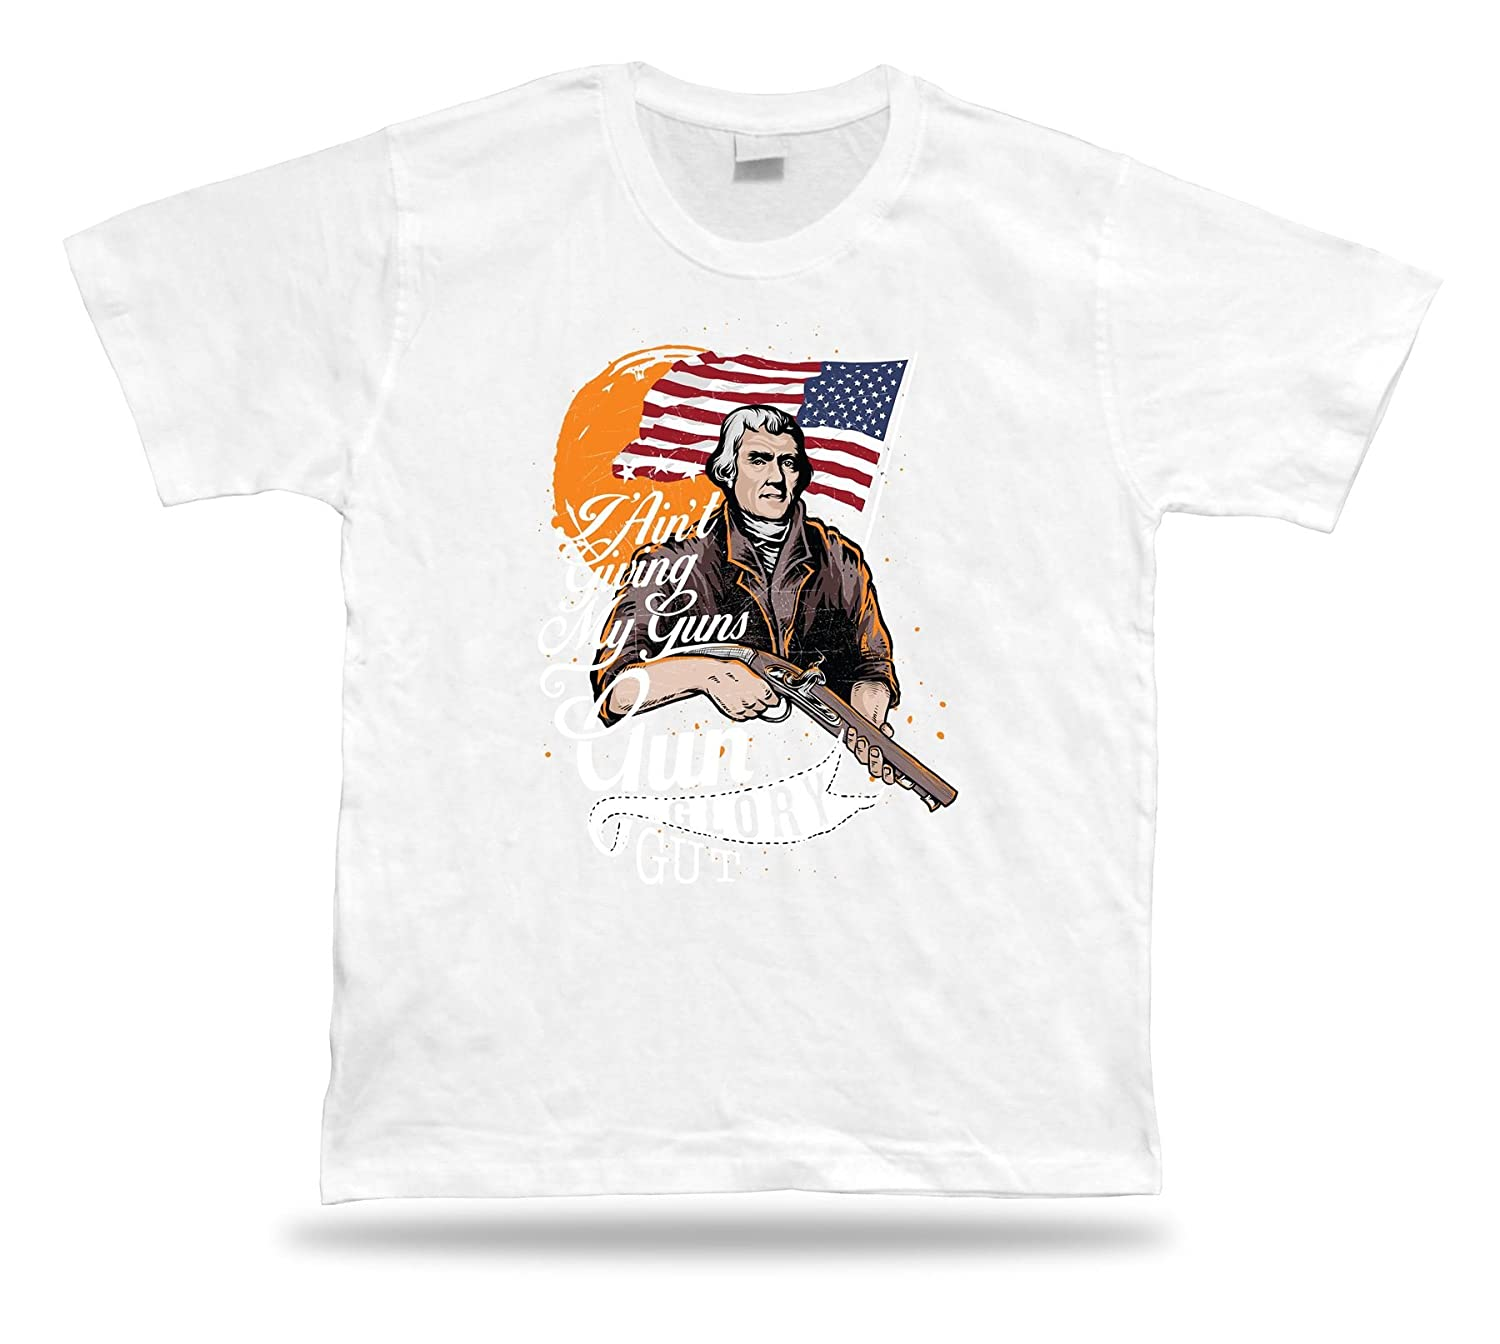 Tshirt Tee Shirt Birthday Gift Idea Second Amendment Gun Glory Freedom America